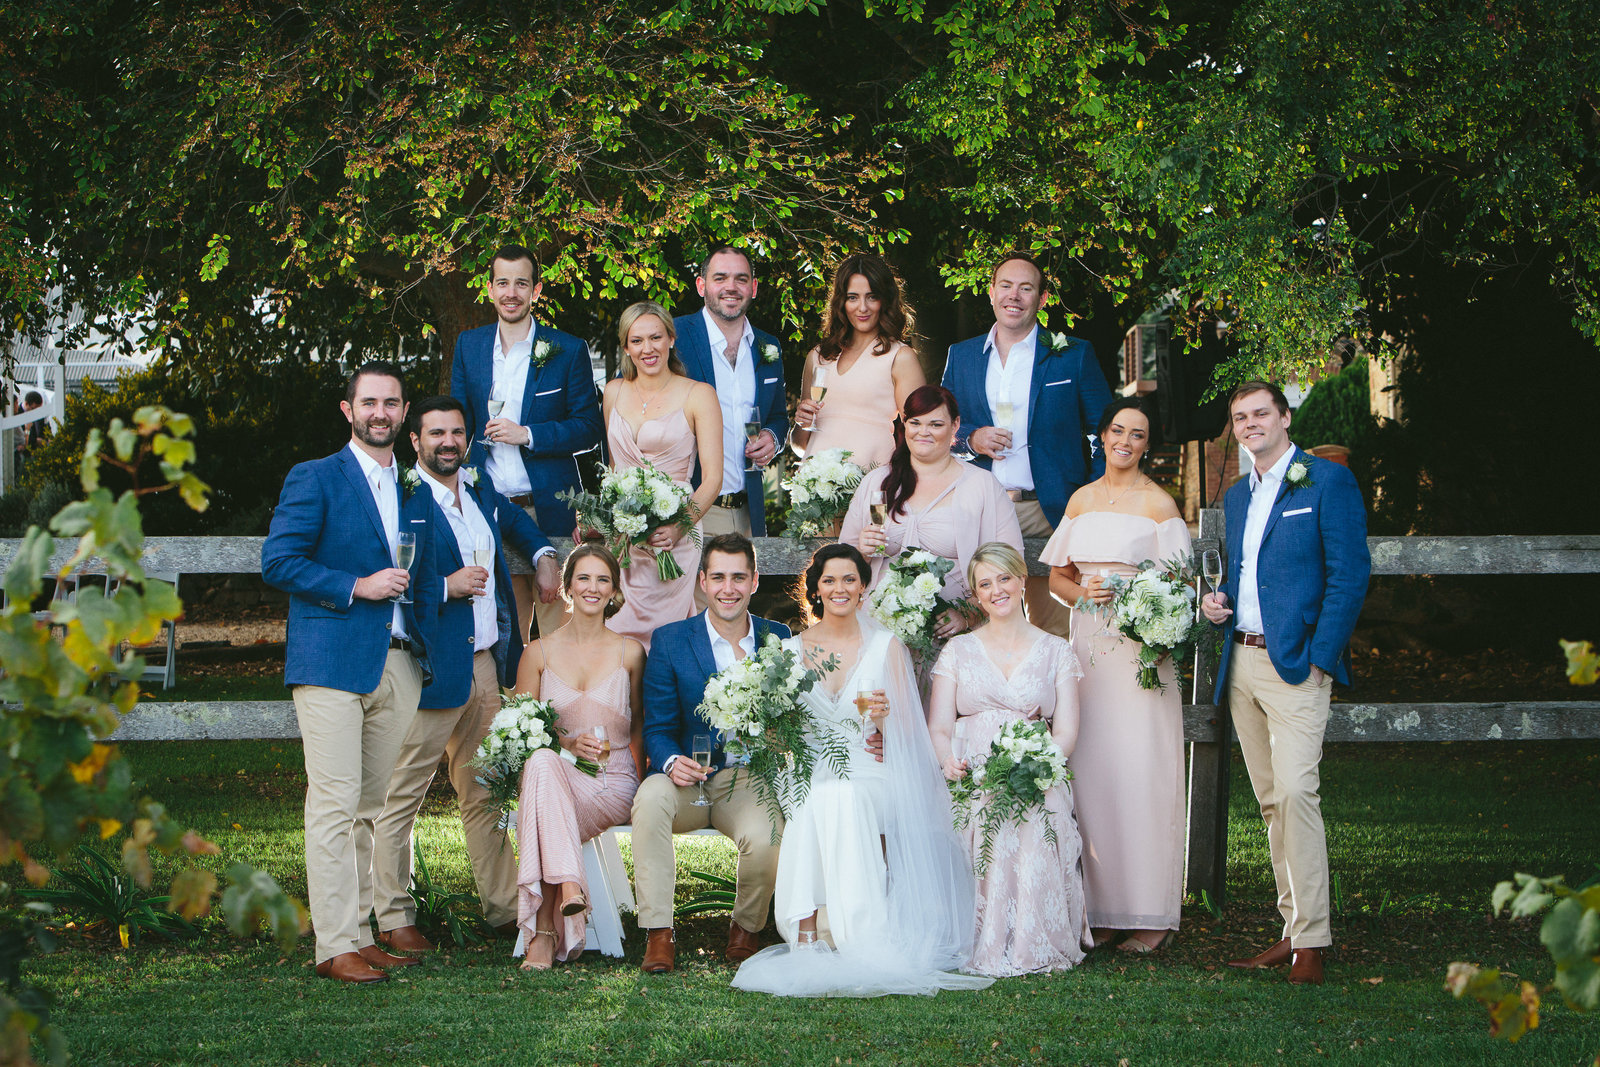 waverley estate wedding, big wedding party